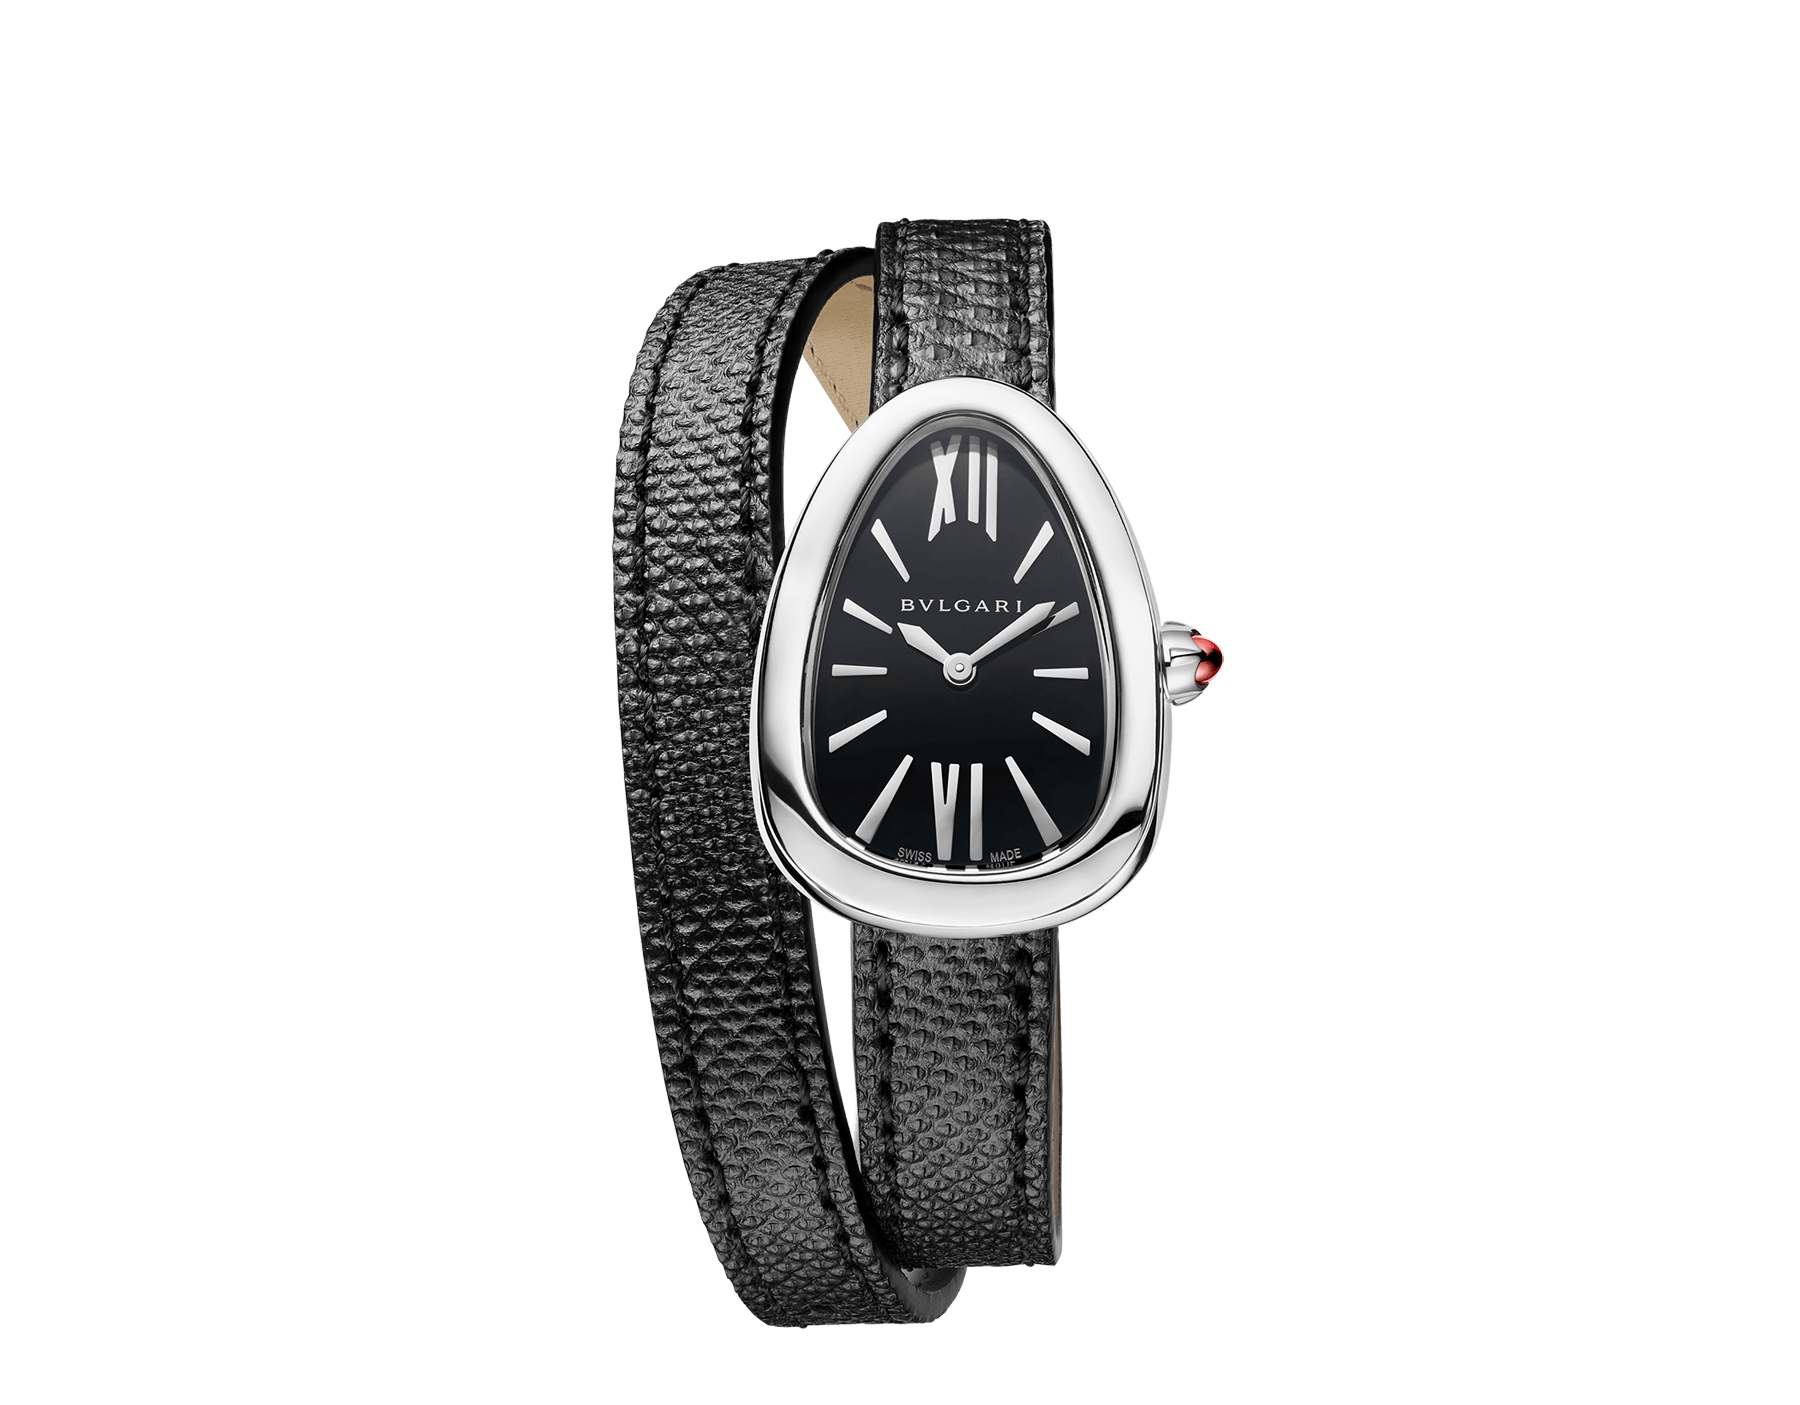 Serpenti watch with stainless steel case, black lacquered dial and interchangeable double spiral bracelet in black karung leather. 102782 image 1